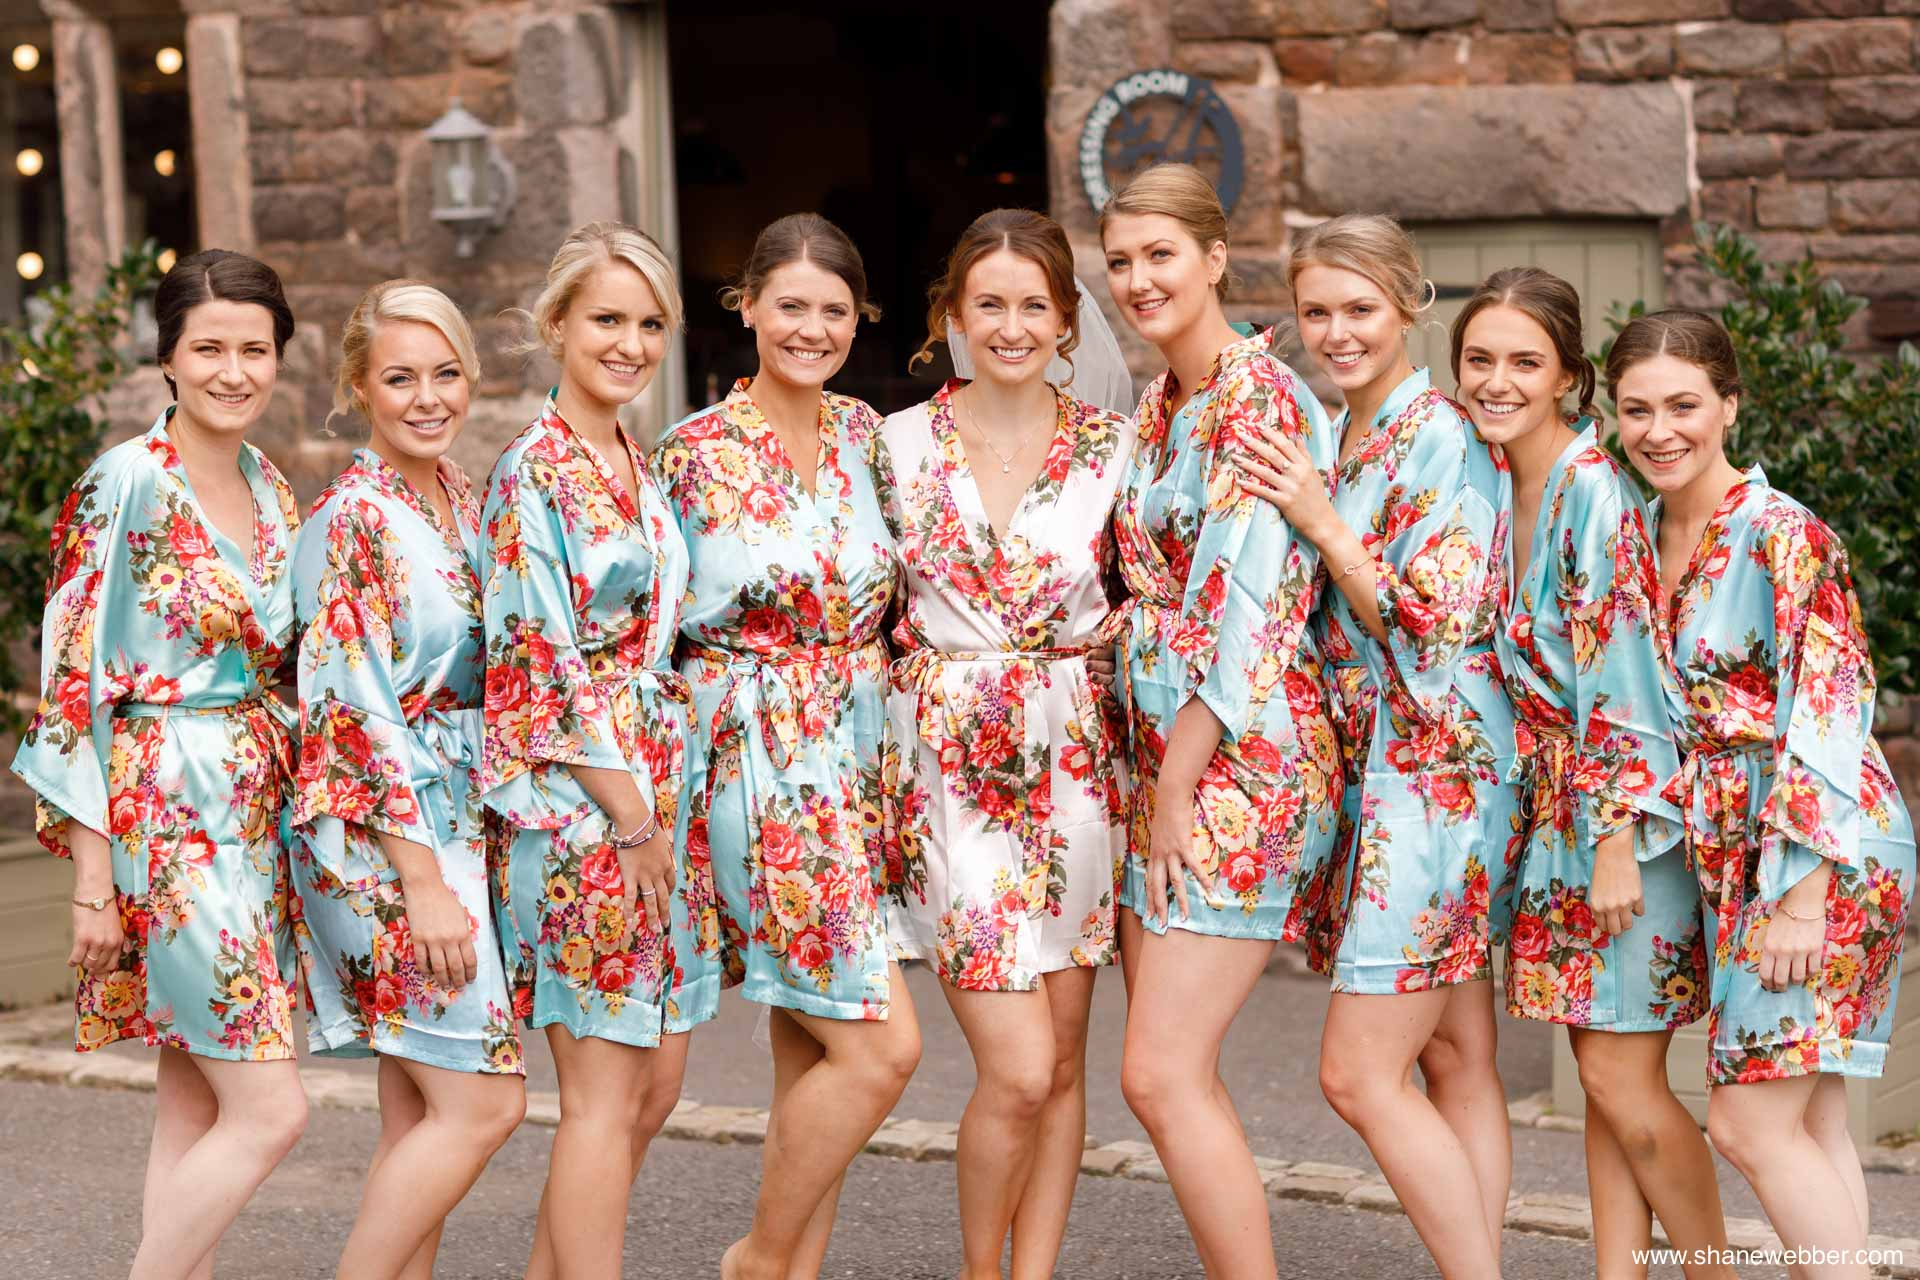 how to select bridesmaids